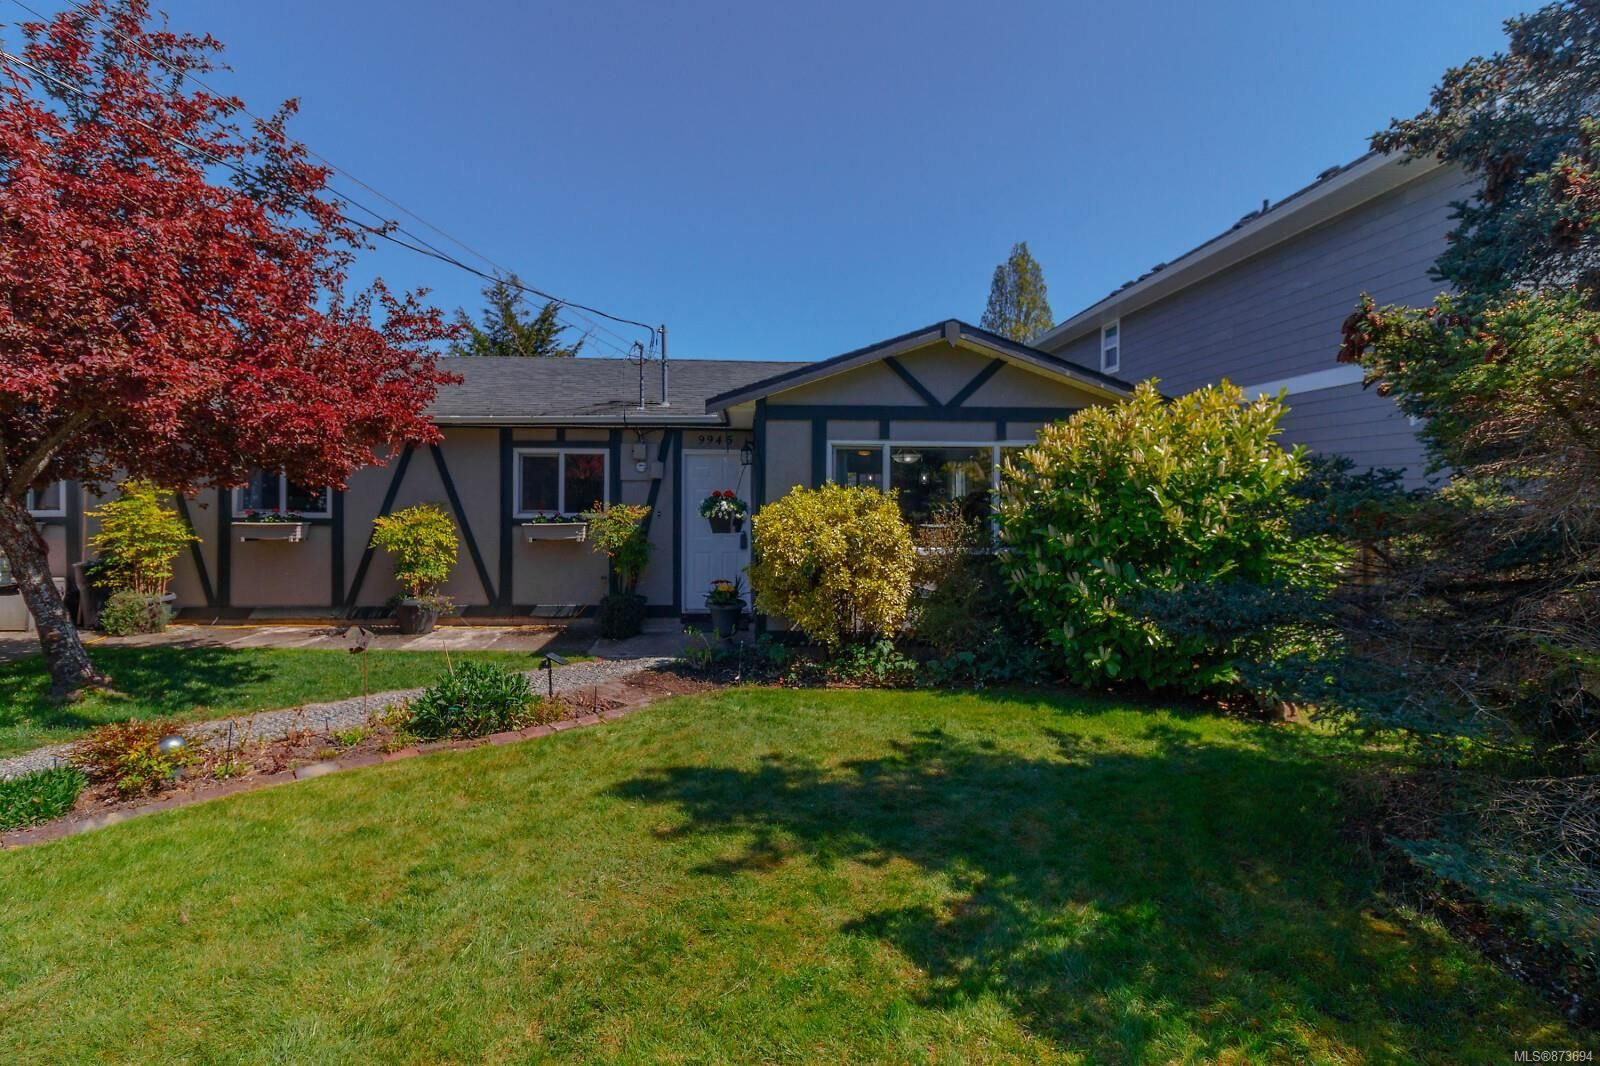 Main Photo: 9945 Bessredge Pl in : Si Sidney North-West House for sale (Sidney)  : MLS®# 873694